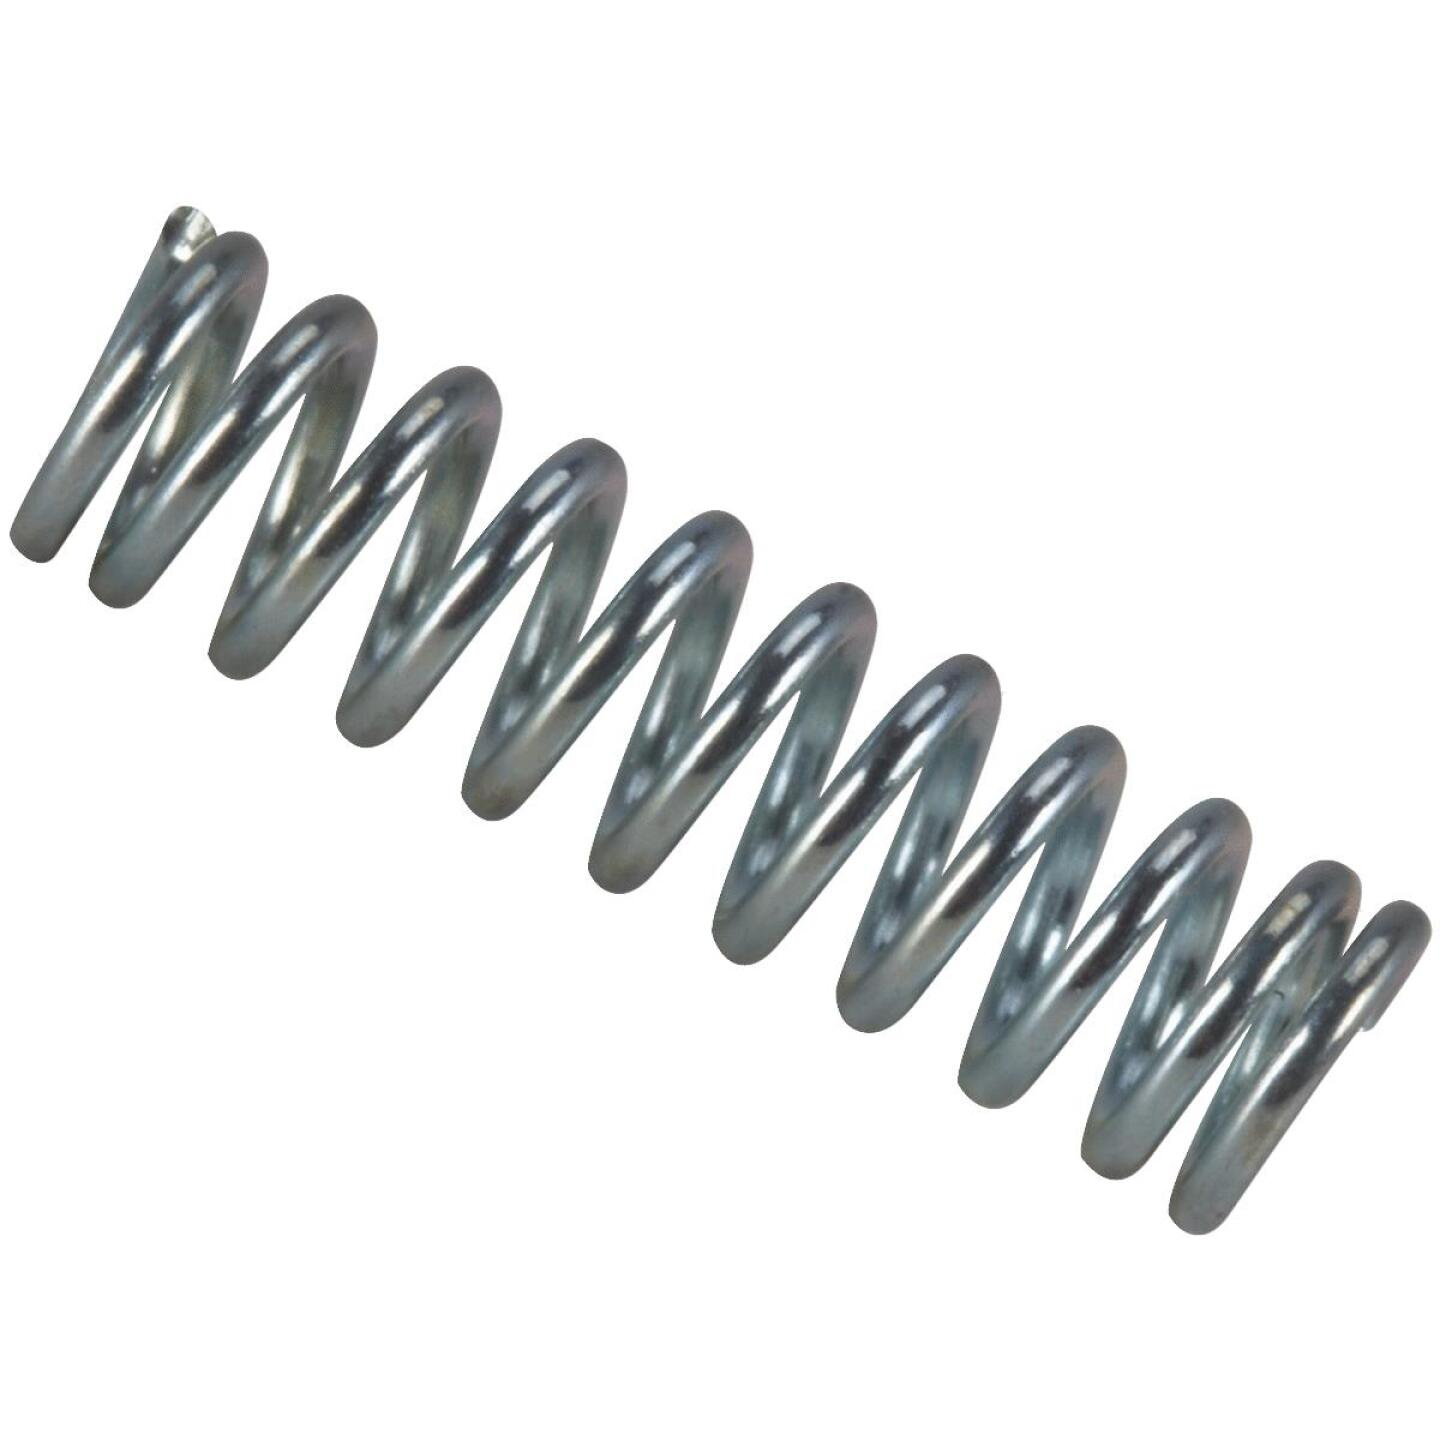 Century Spring 2-3/4 In. x 1/2 In. Compression Spring (2 Count) Image 1